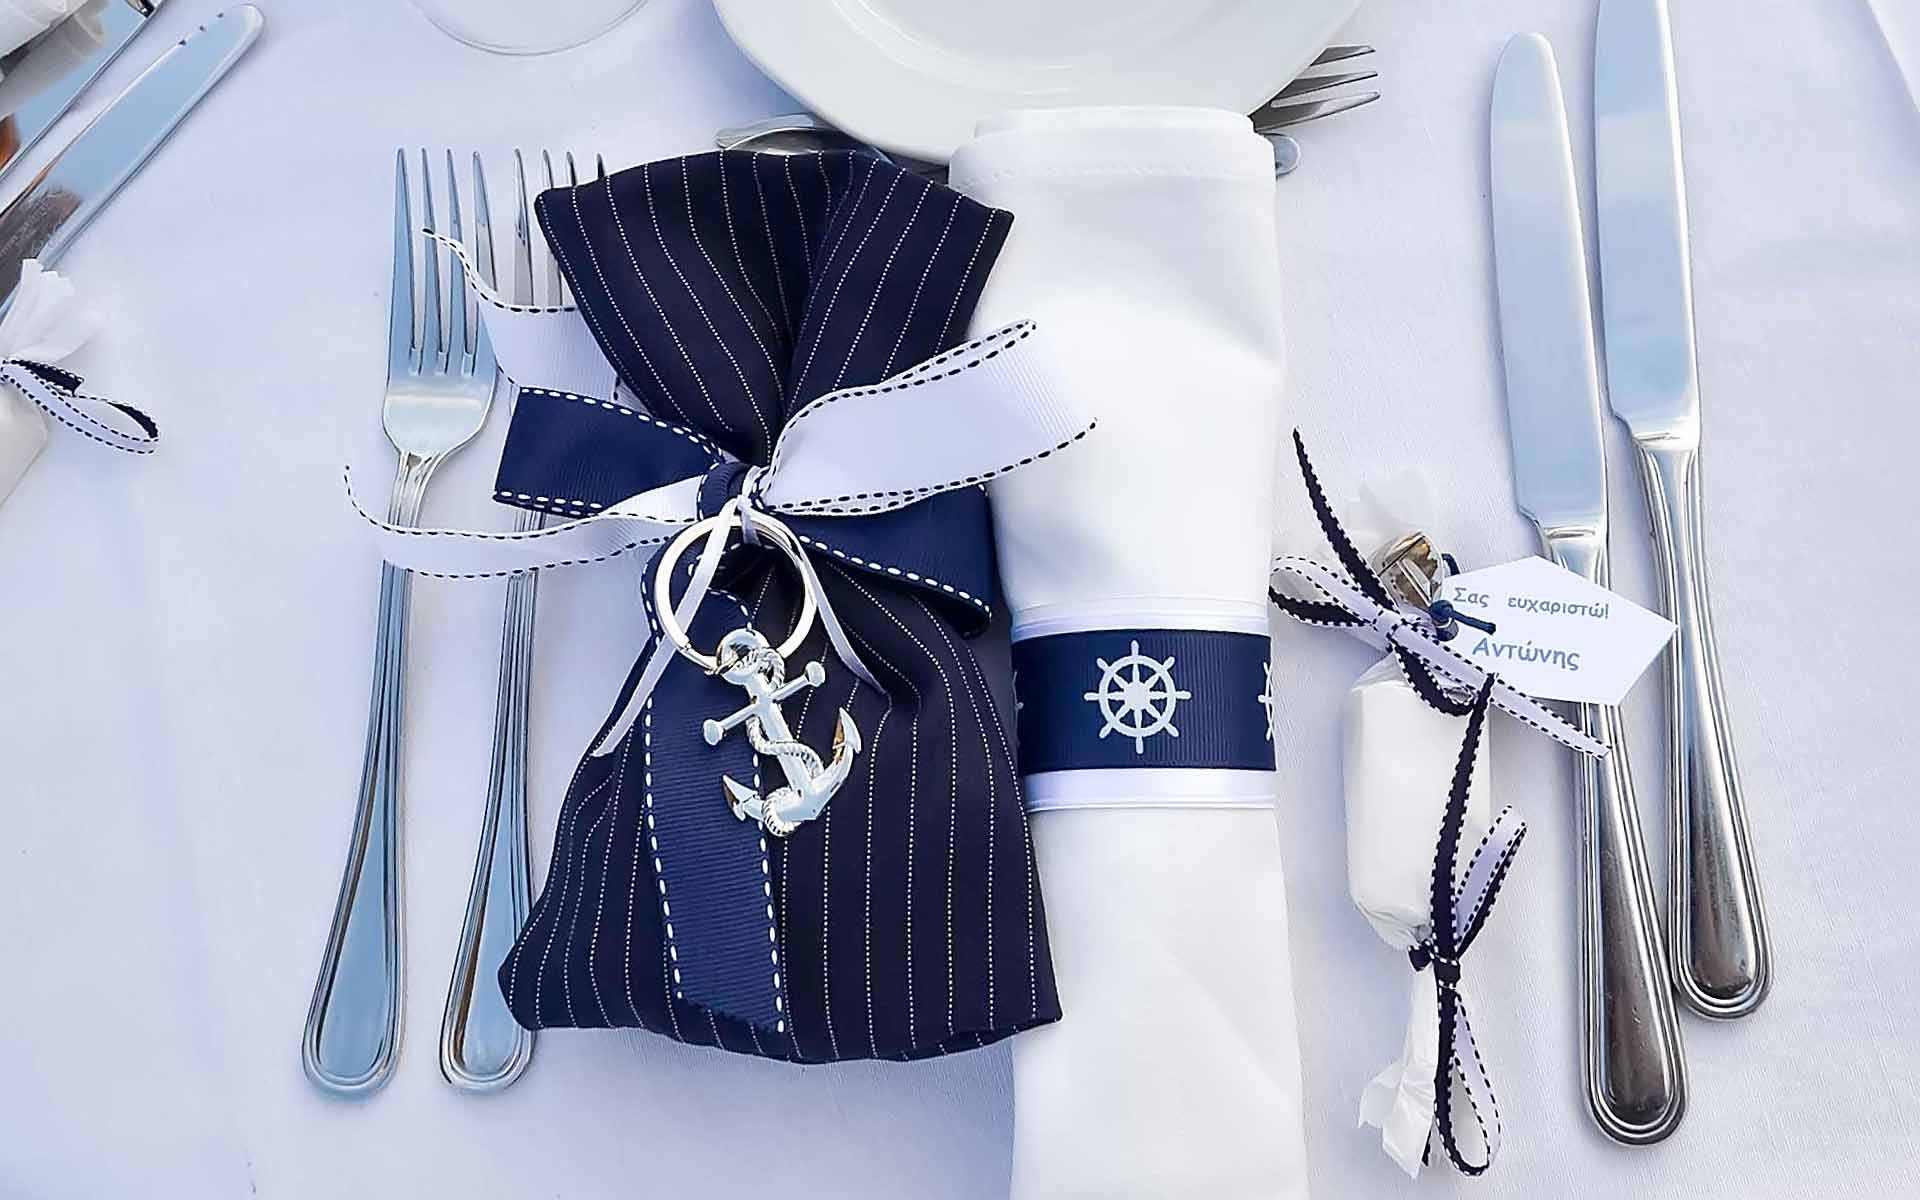 Nautical-Baptism-With-Blue-Navy-Pouk-With-Decorative-Metal-Anchor-Elements